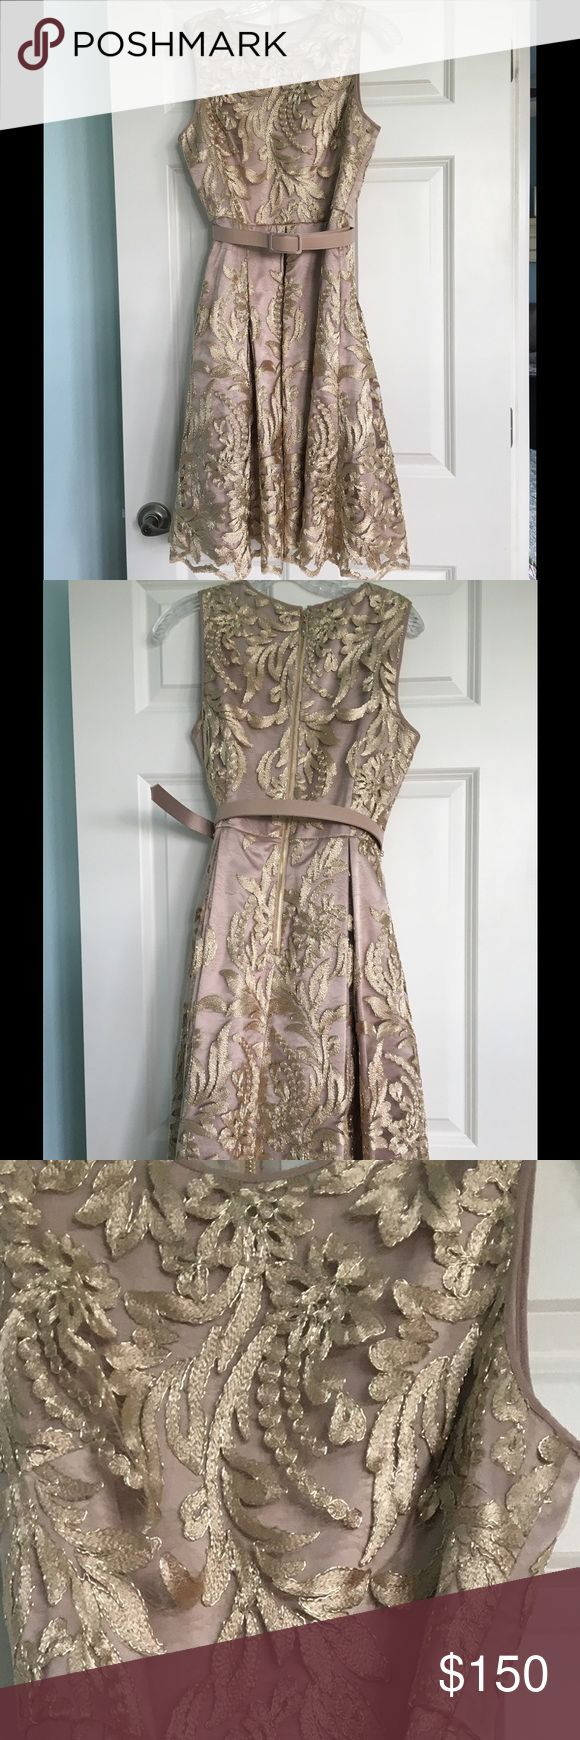 BHLDN by Anthropologie Rosa Dress Stunning gold tea length dress with metallic gold lace overlay. This is the perfect dress for any occasion! It comes with a tonal belt to flatter the waist line and features hidden pockets to store your lipstick. Worn once and like new. Size 6 from anthropologie's BHLDN line. Anthropologie Dresses Midi